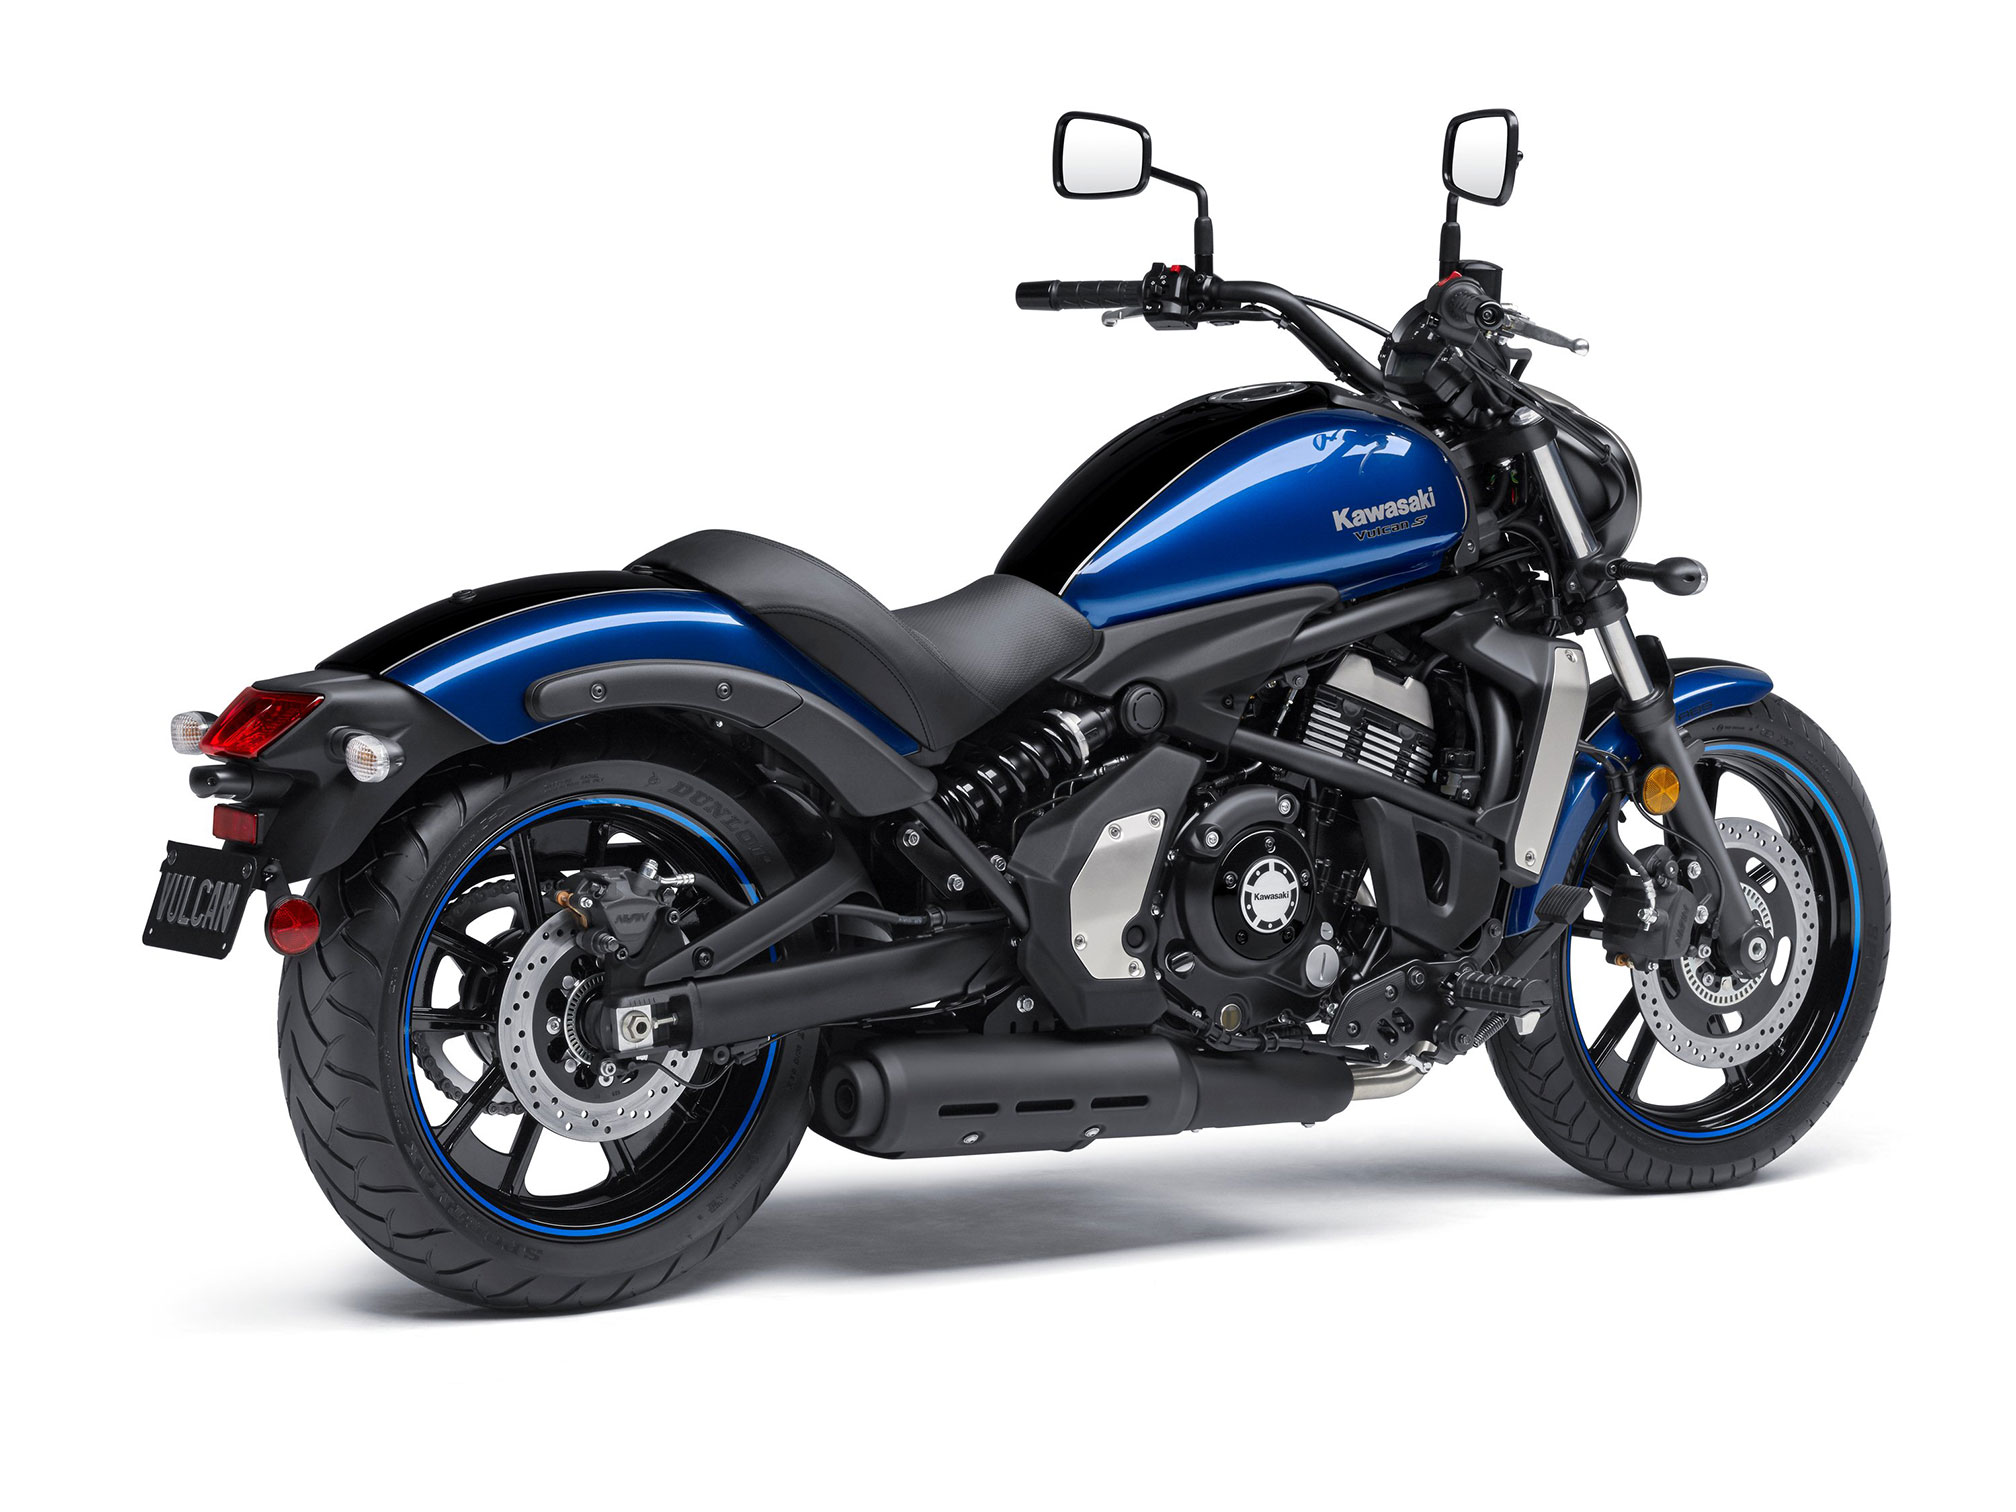 2016 kawasaki vulcan s abs se review